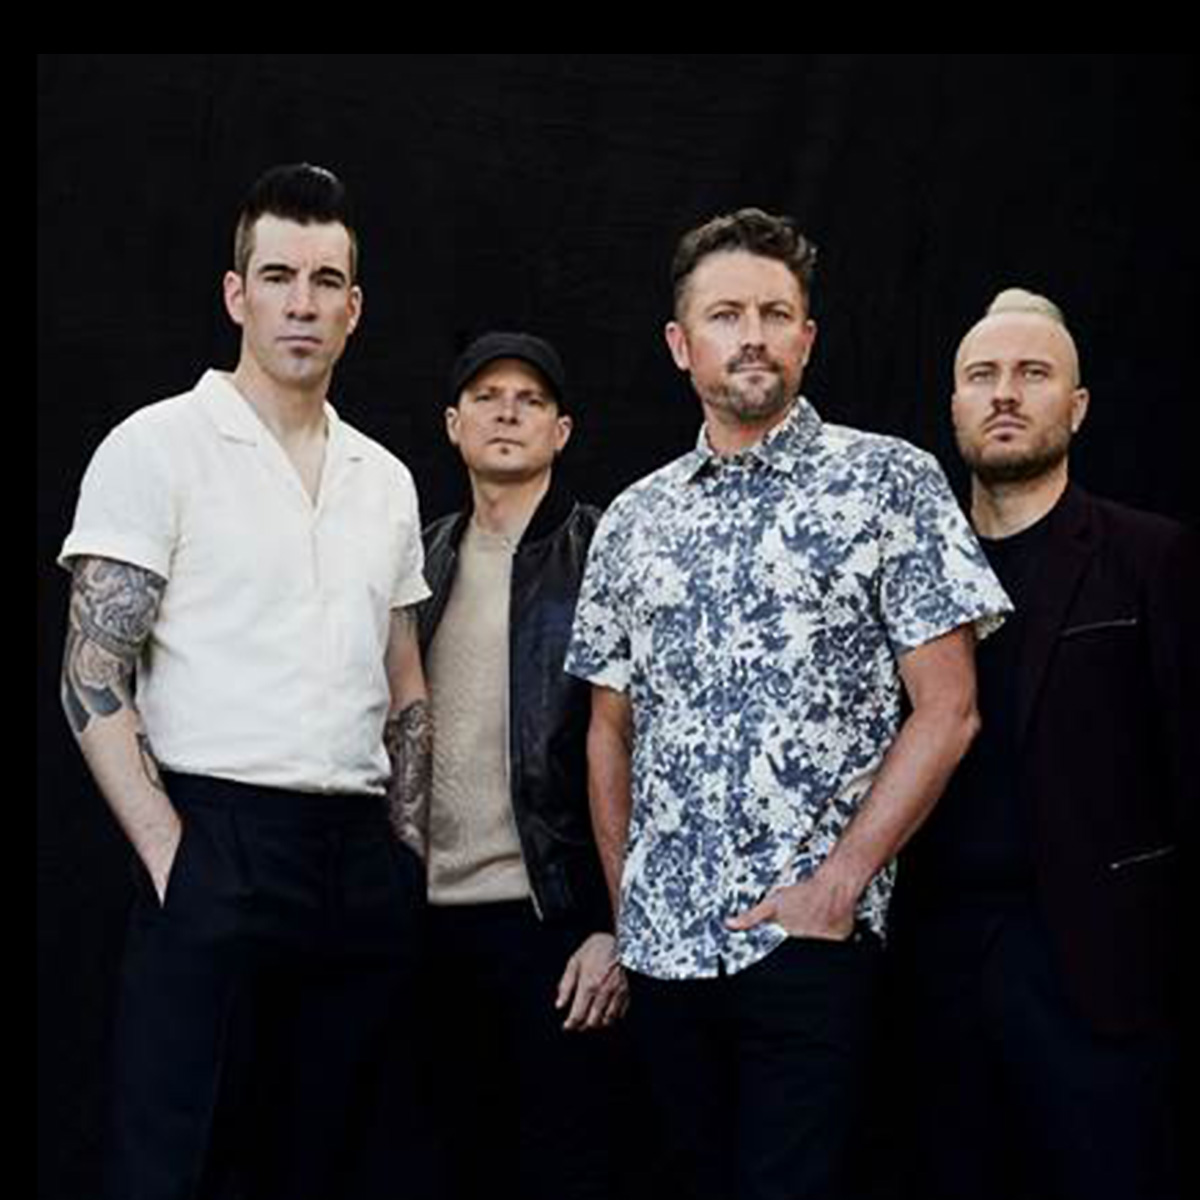 Theory Of A Deadman Releases Powerful Single and Video About Domestic Violence